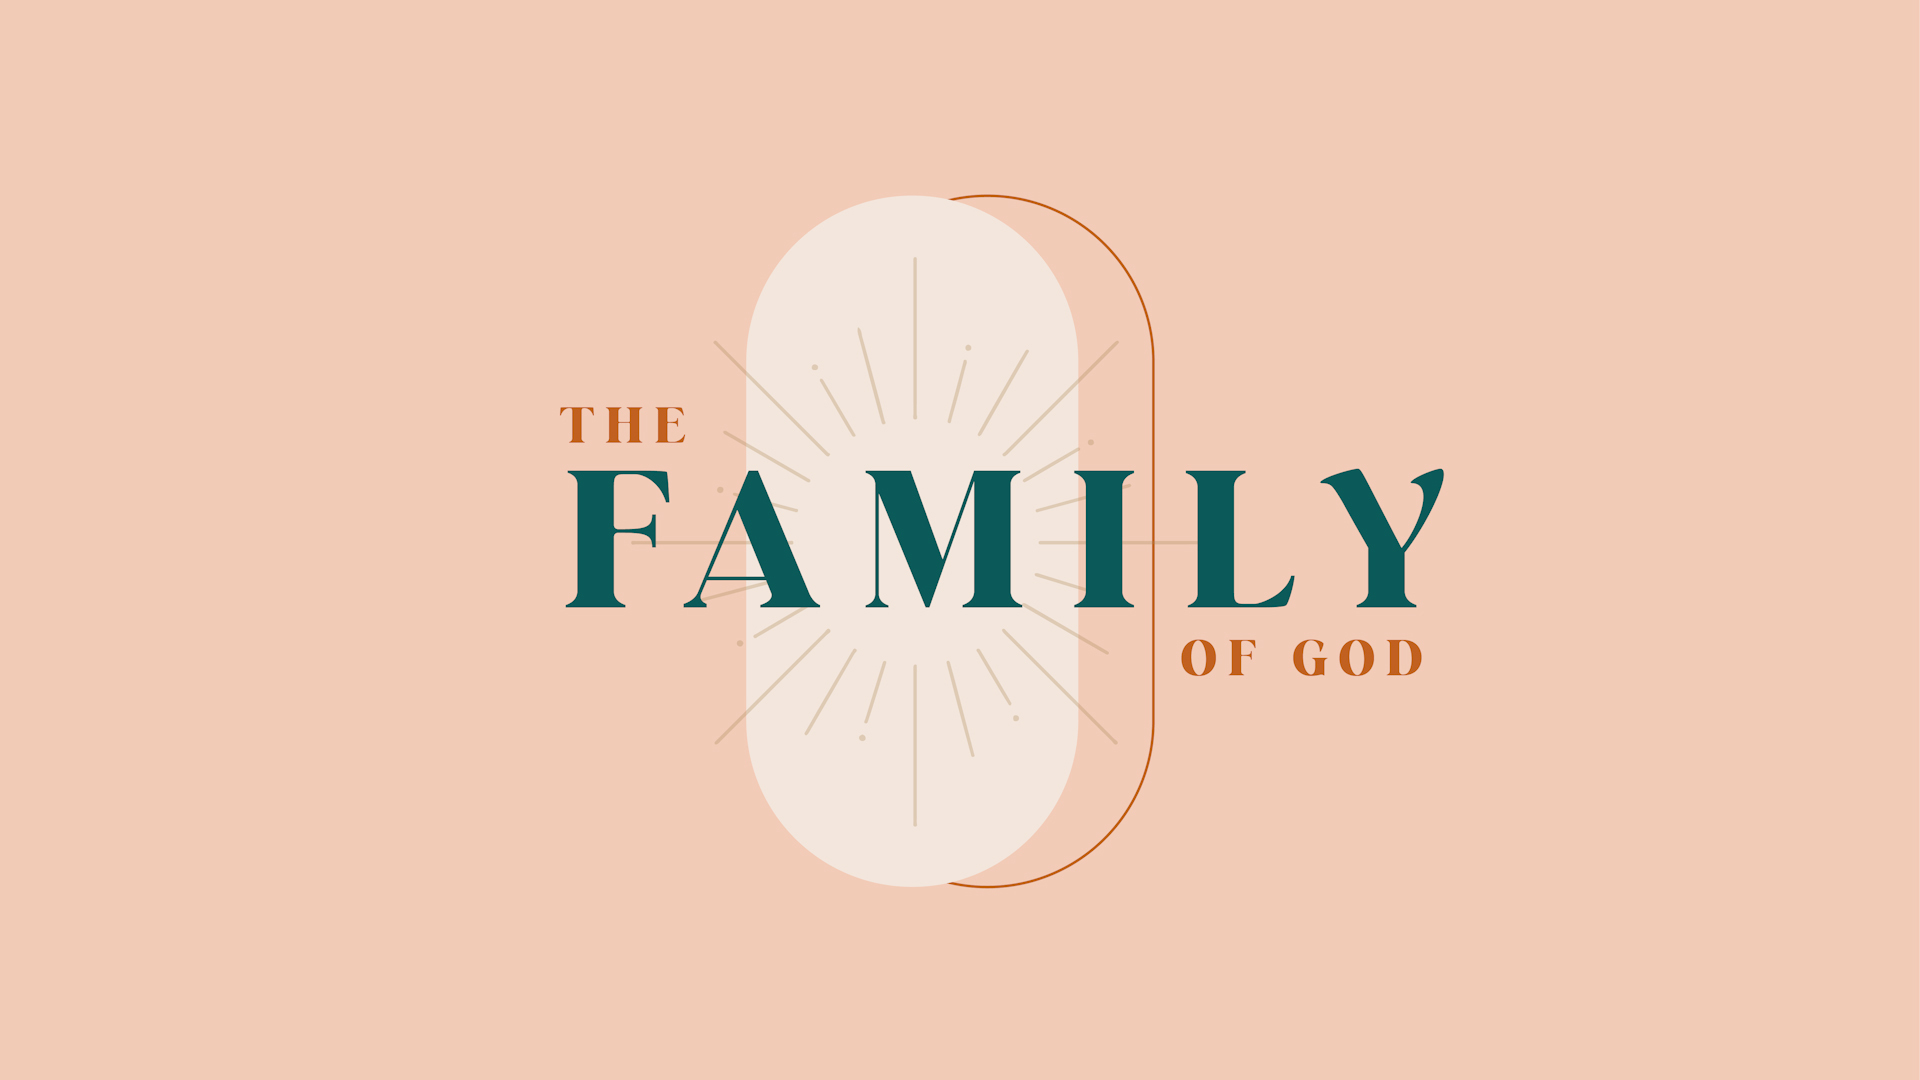 The Family of God is Missional